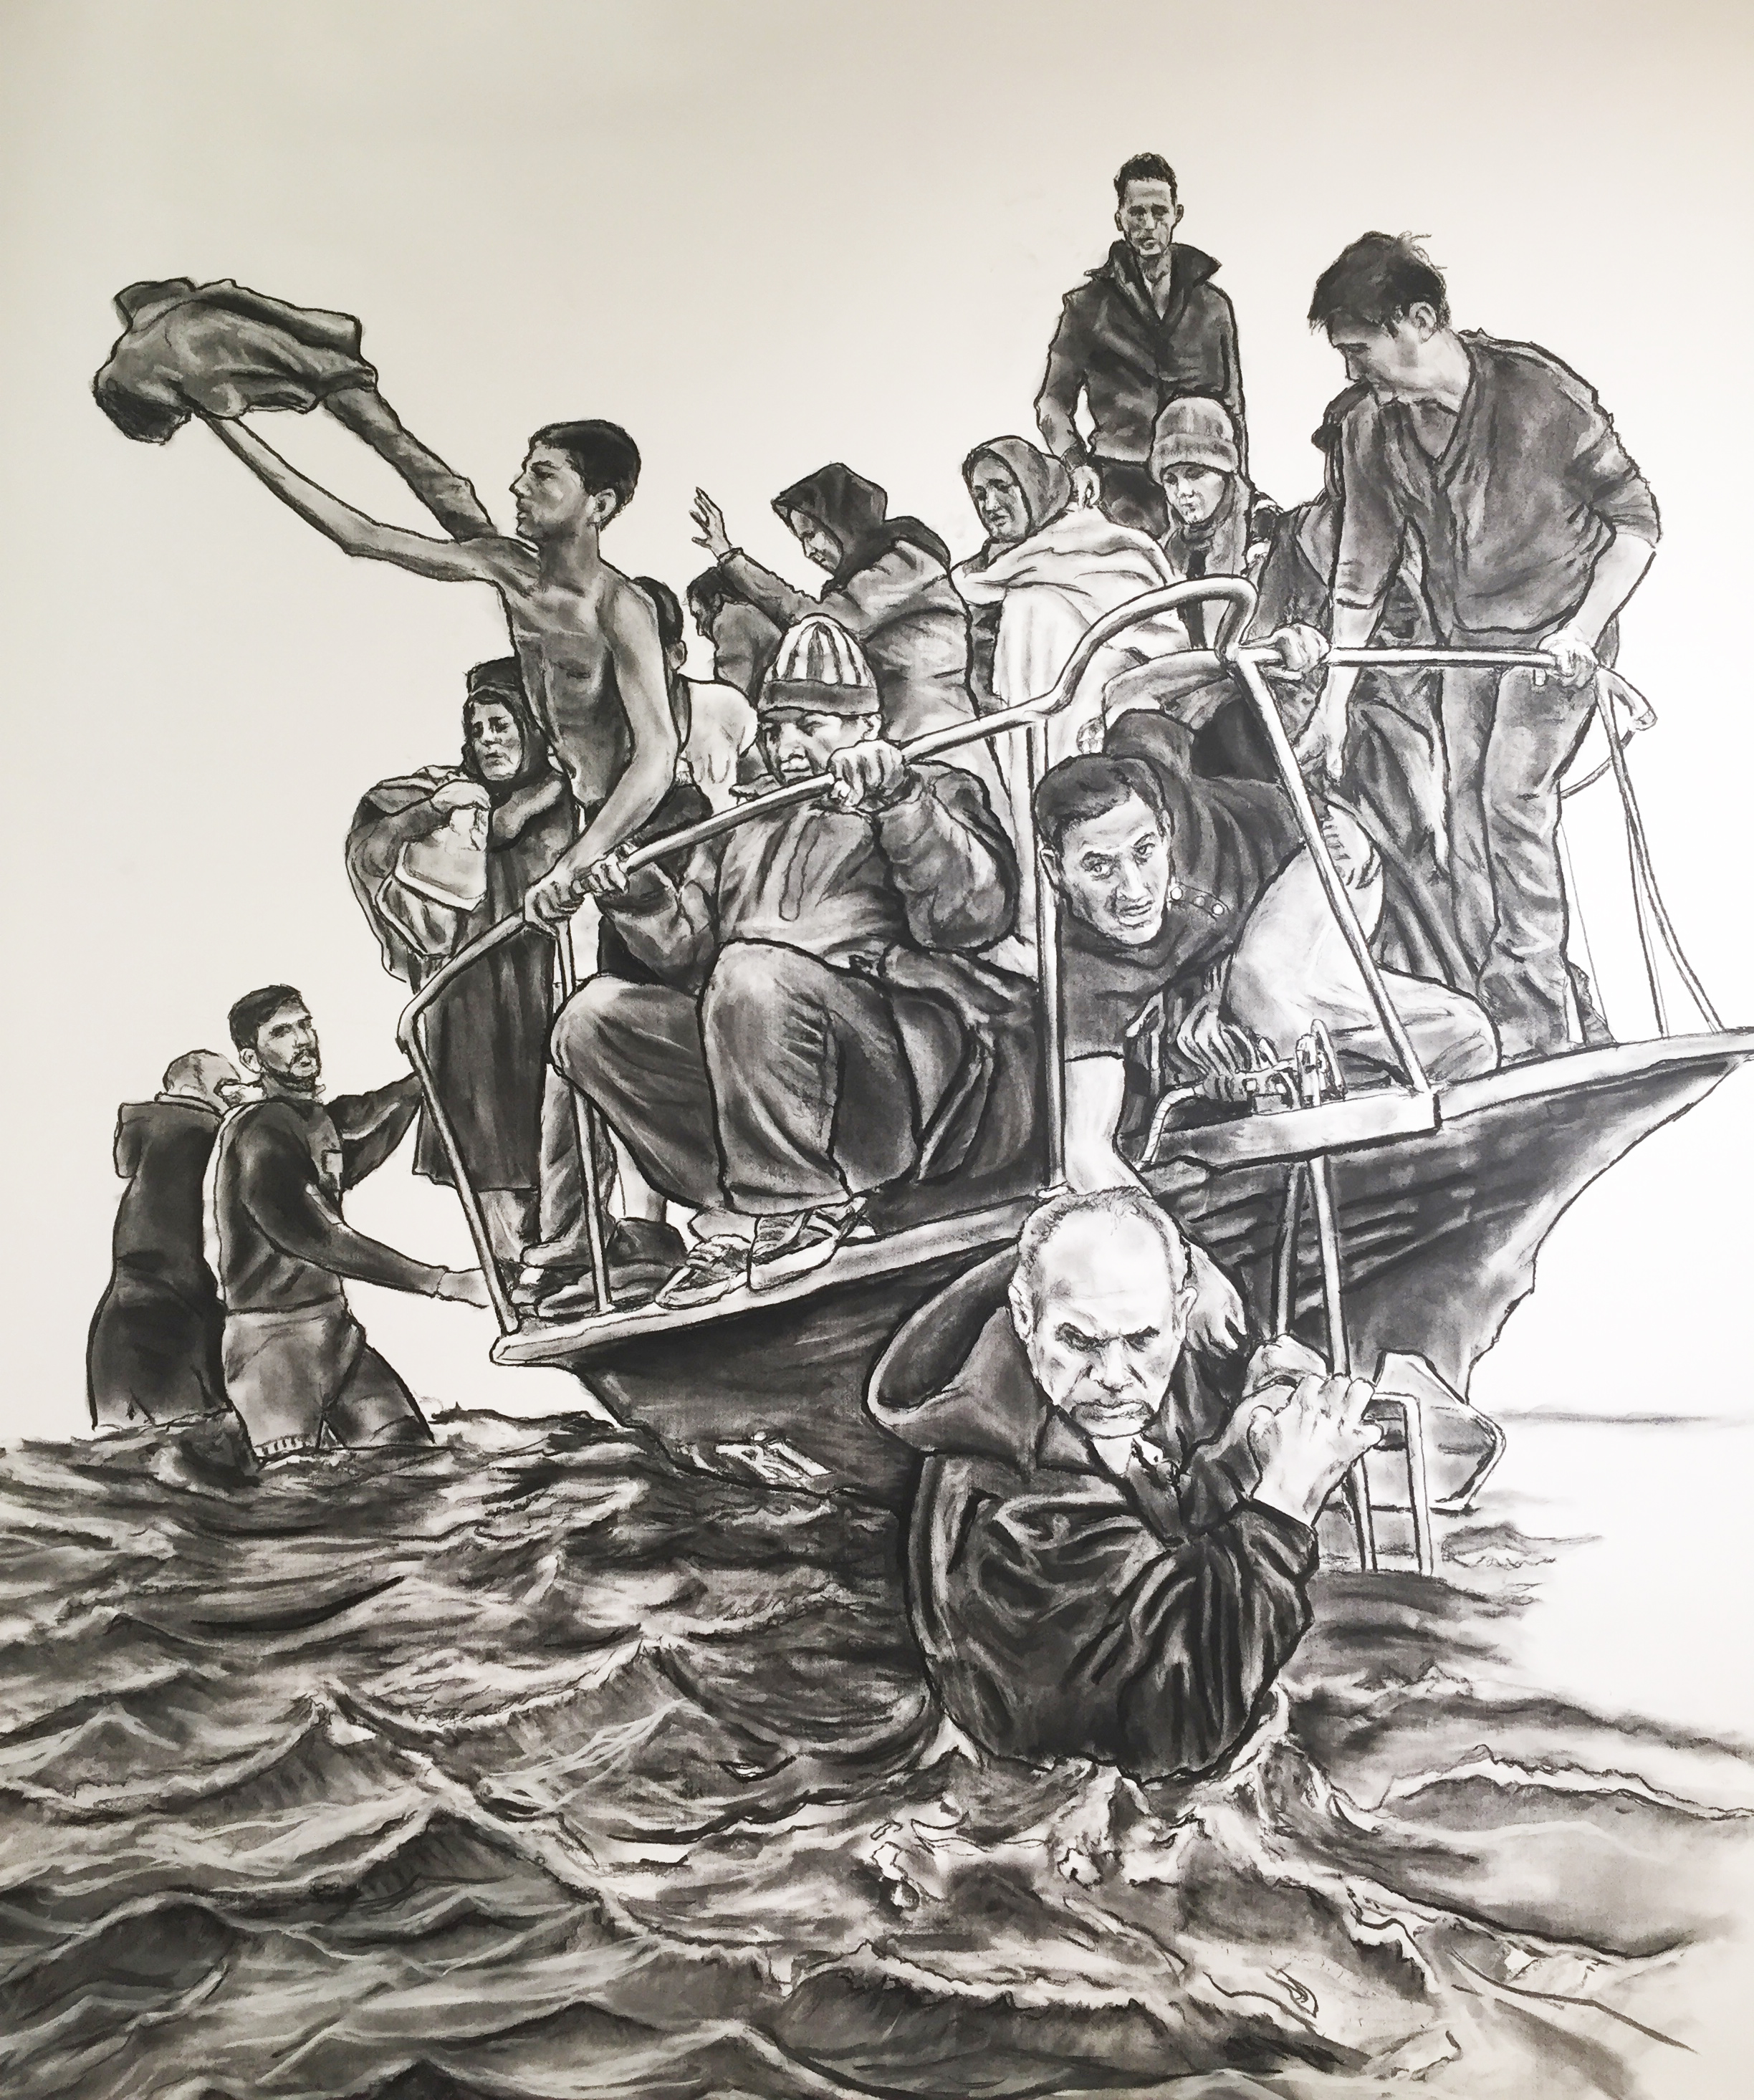 Humans on boat